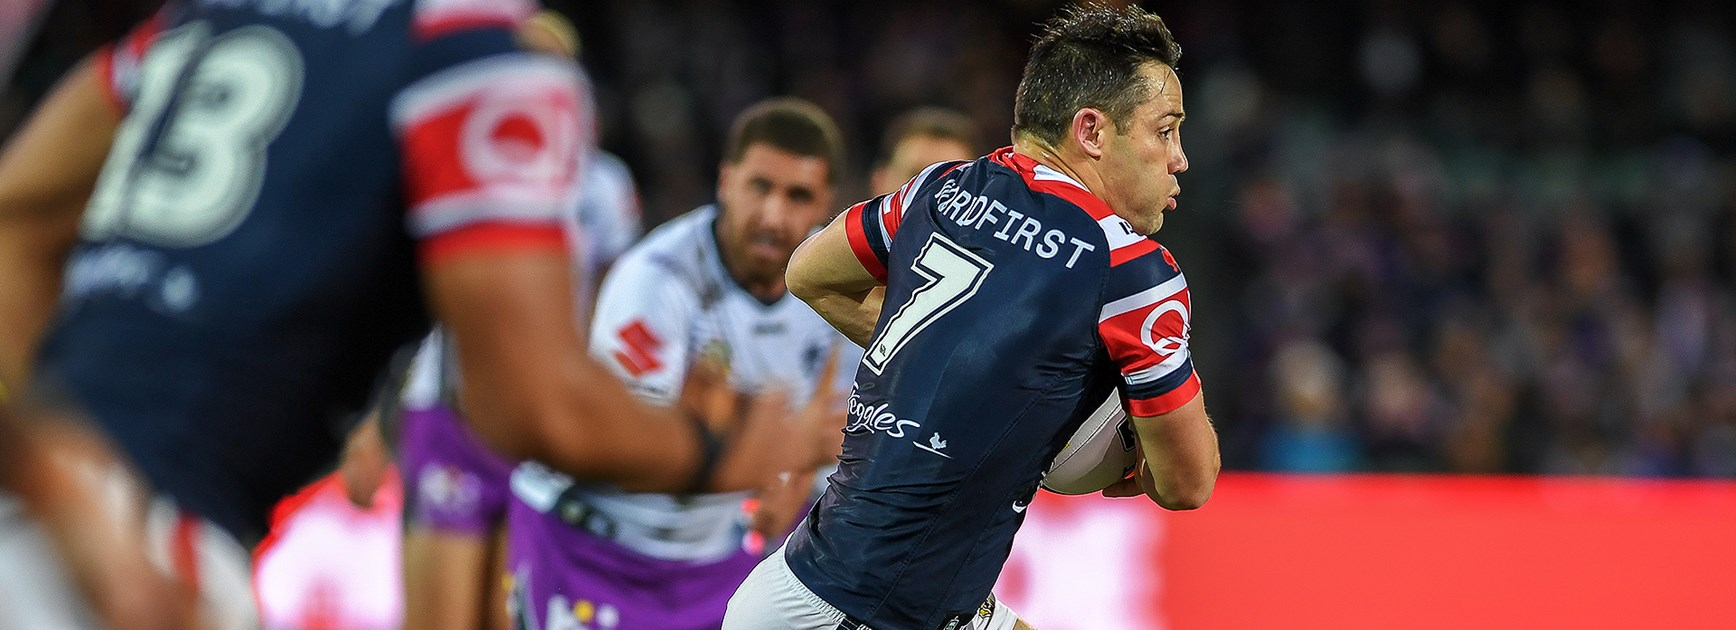 Smith seals dramatic last minute win for Storm over Roosters